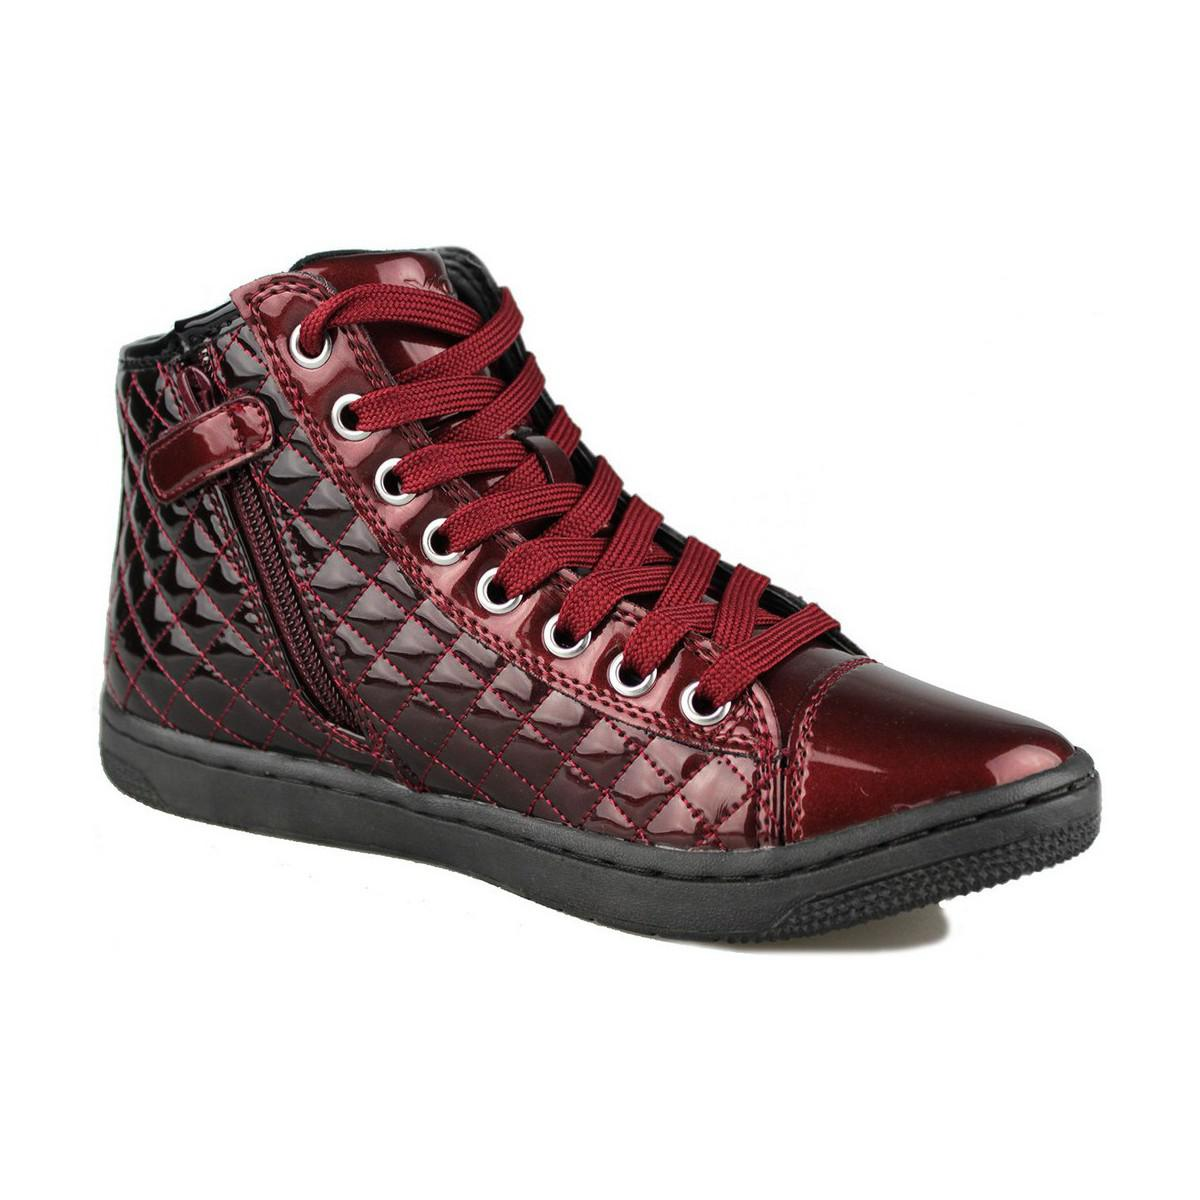 b1c49c4cac Geox. Jr Kalispera Girl Booties Women's Shoes (high-top Trainers) In  Multicolour